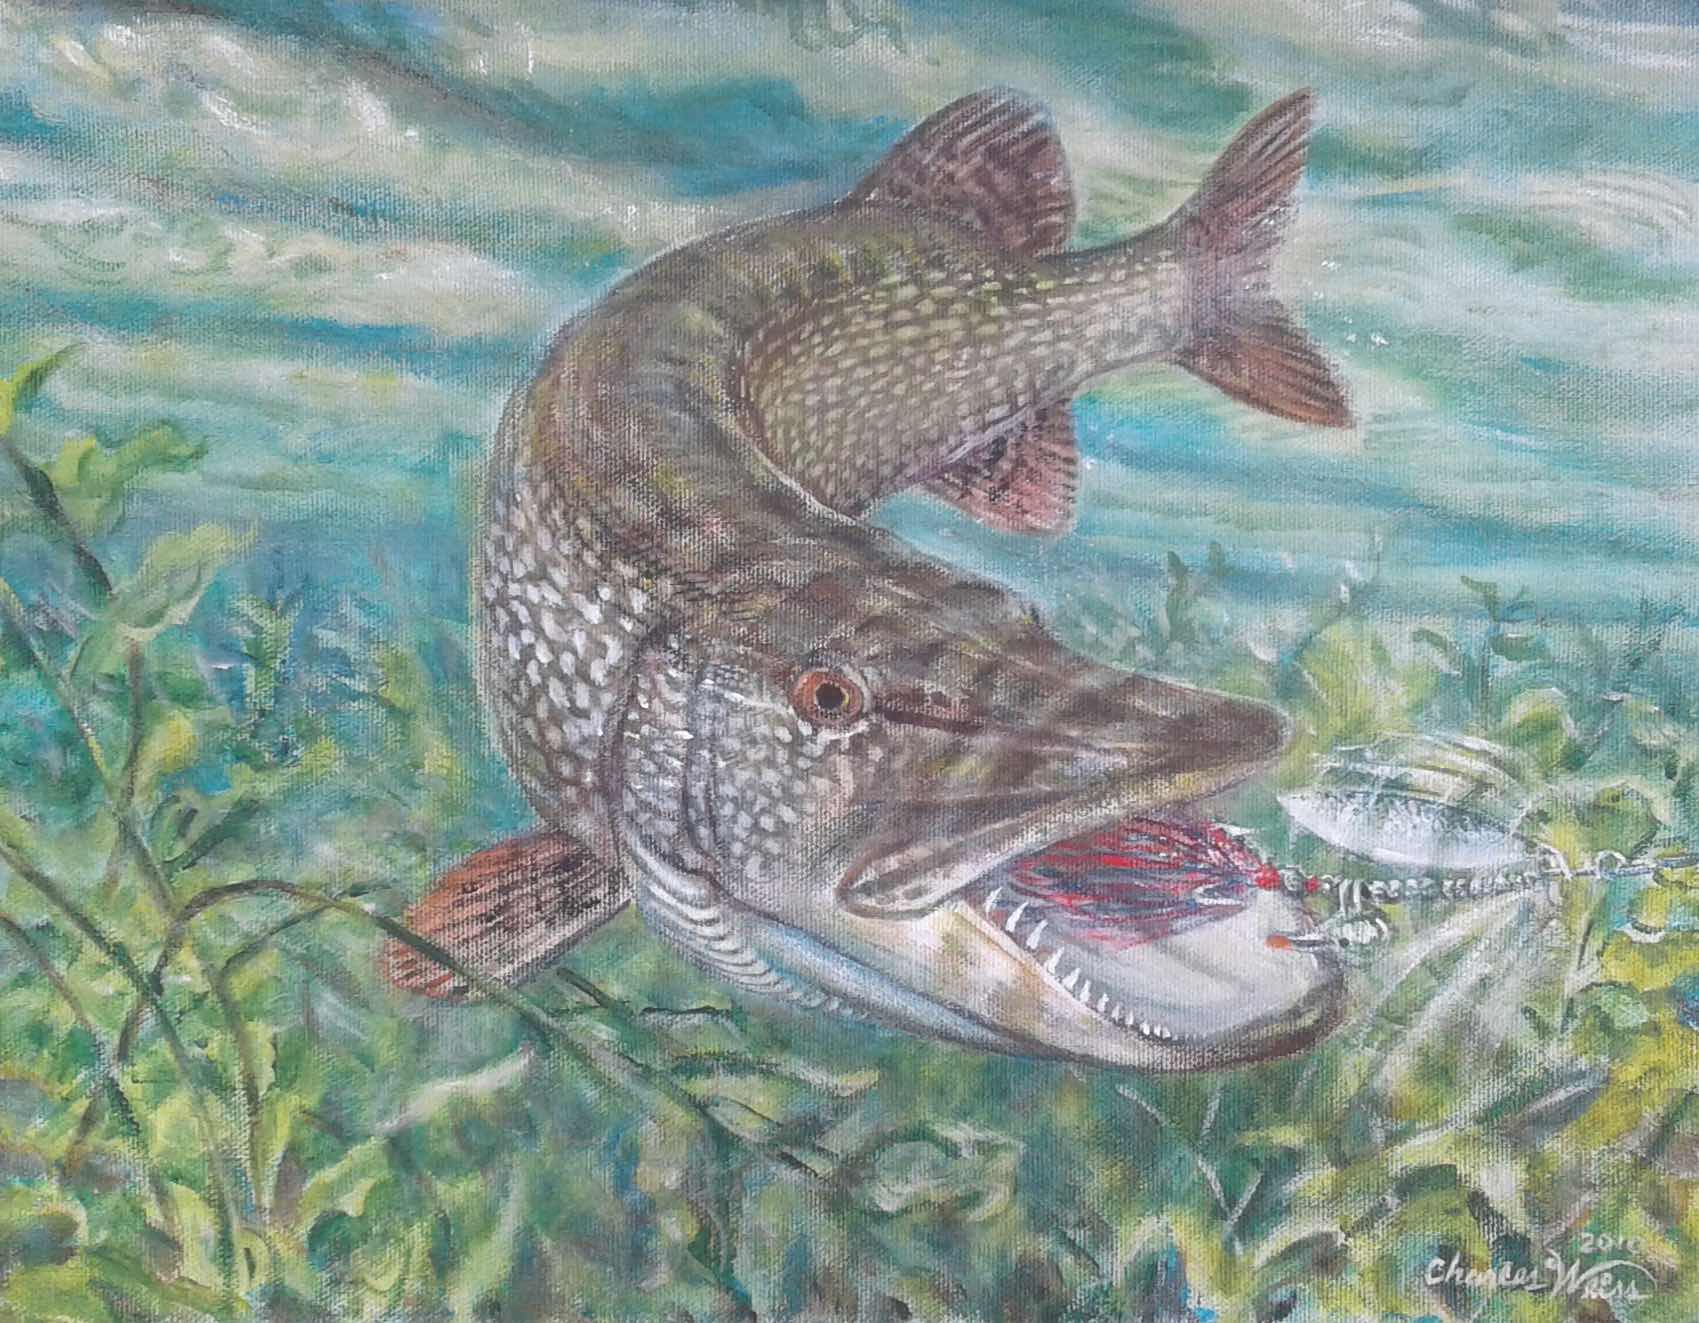 esoxonly-charles-weiss-northern-pike-attack